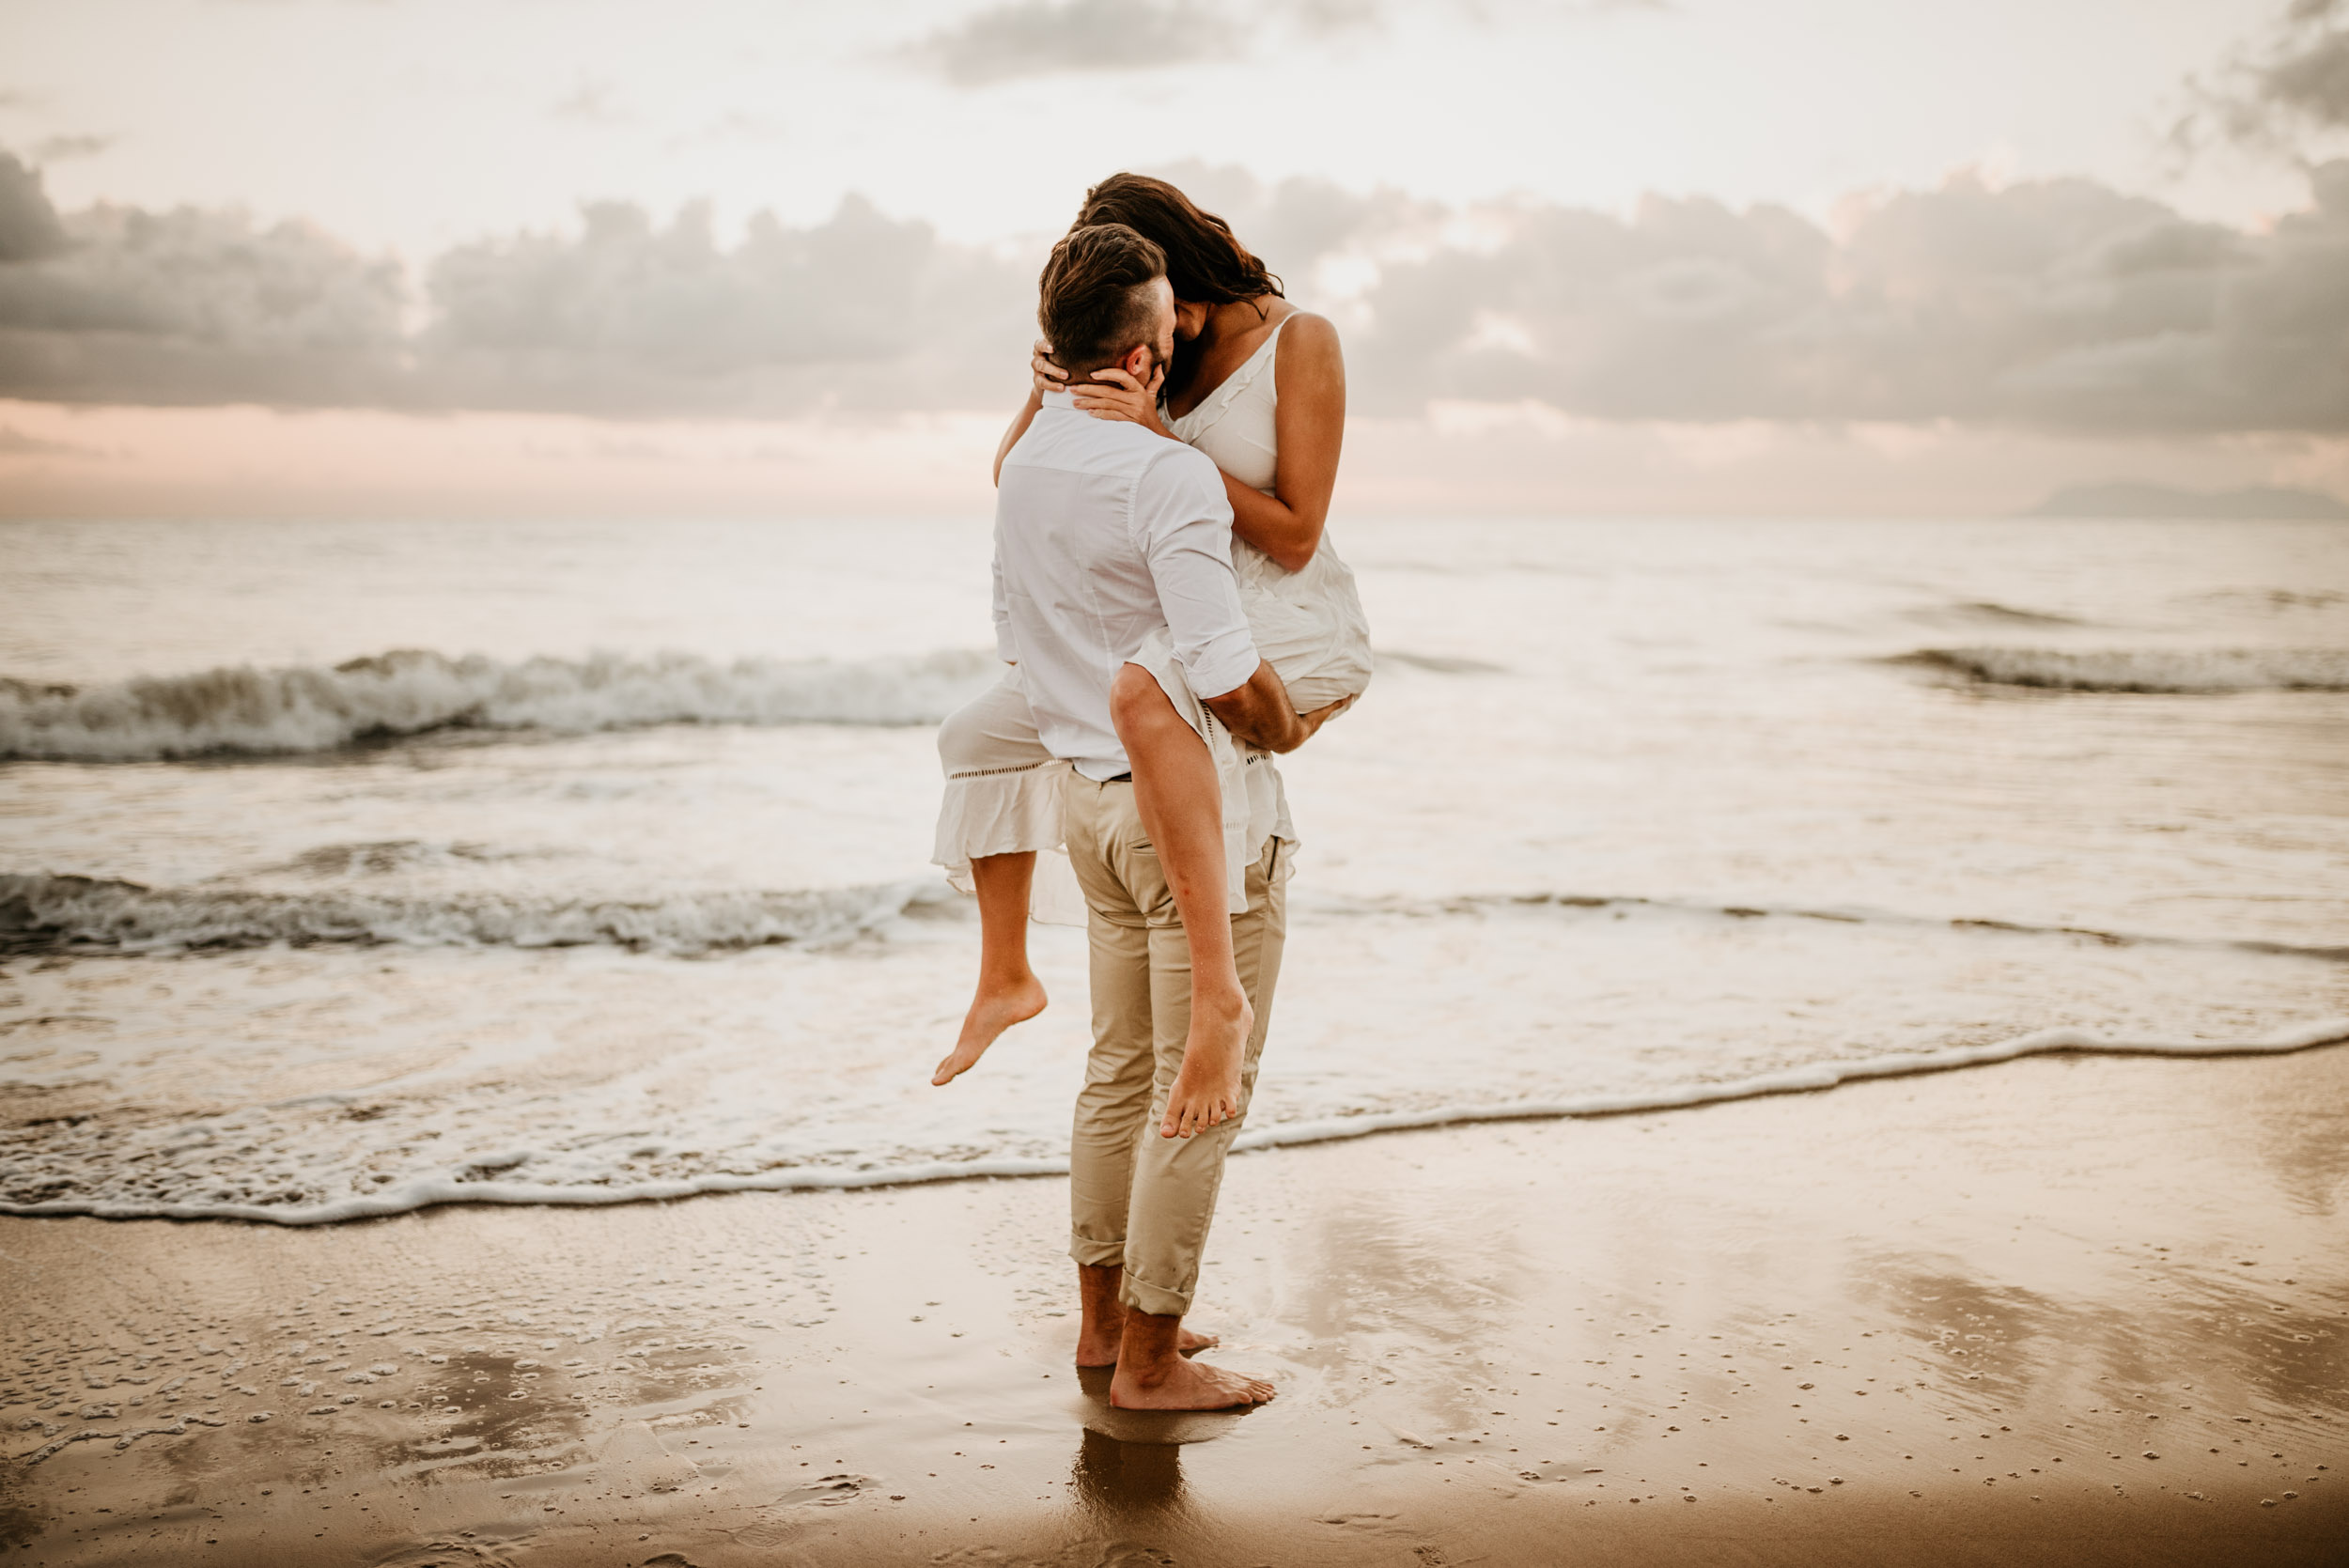 The Raw Photographer - Cairns Wedding Photographer - Engaged Engagement - Beach location - Candid Photography Queensland-6.jpg